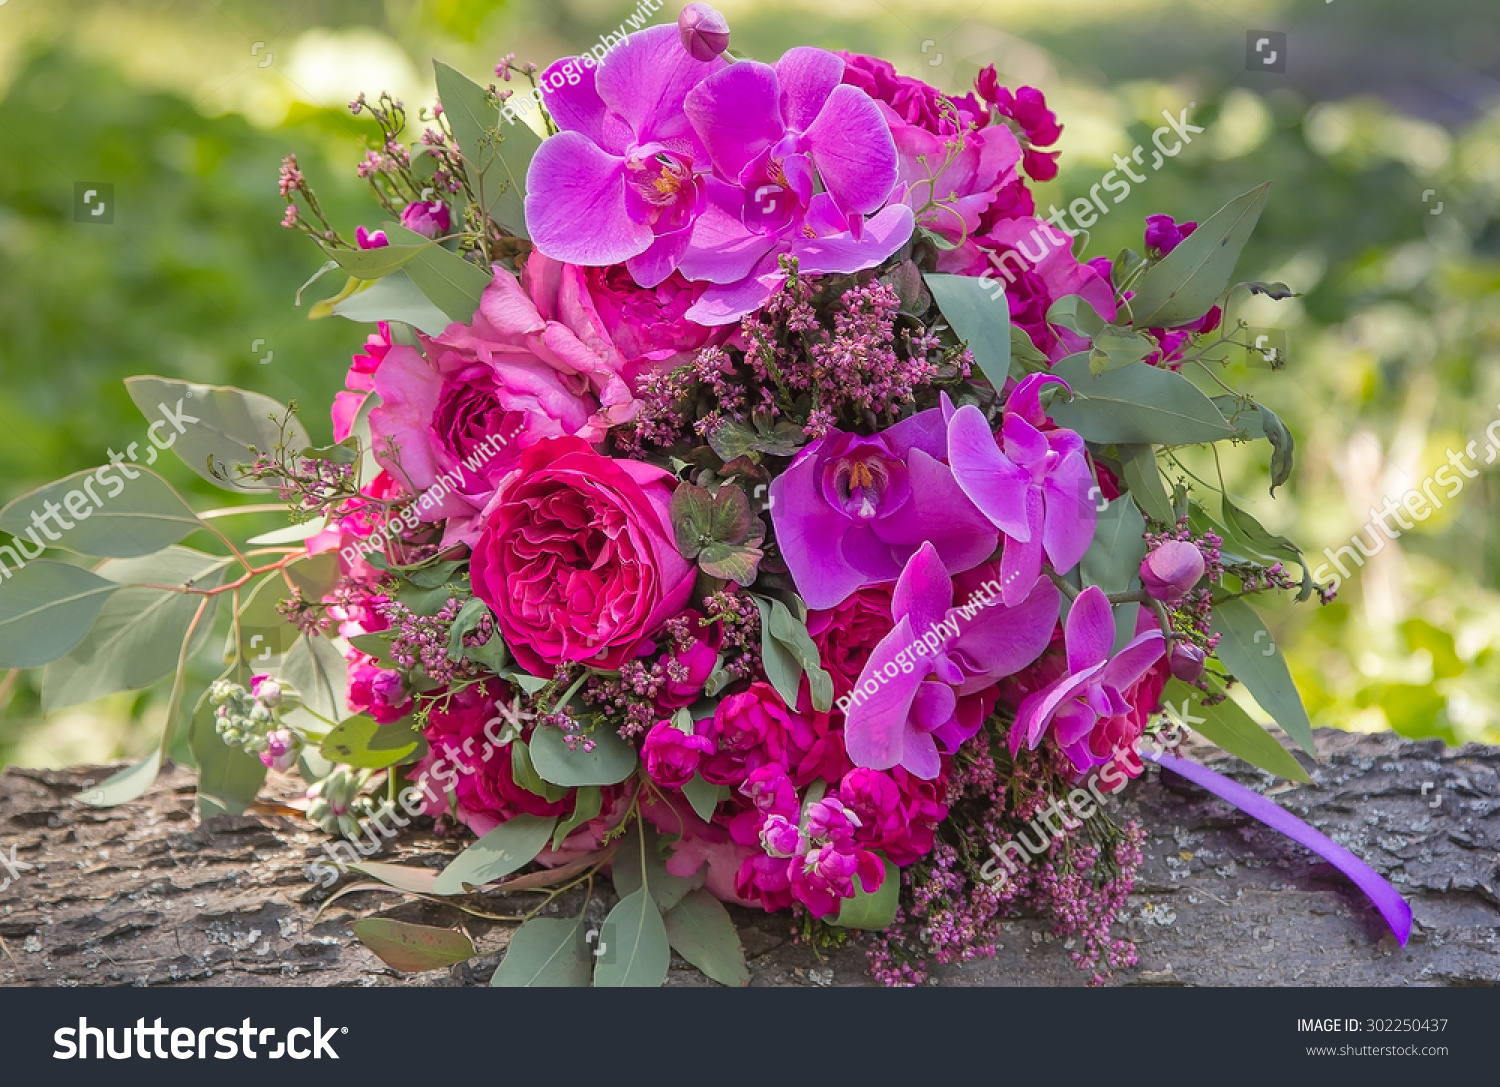 Big beautiful pink and purple wedding bouquet lying on a wooden ...